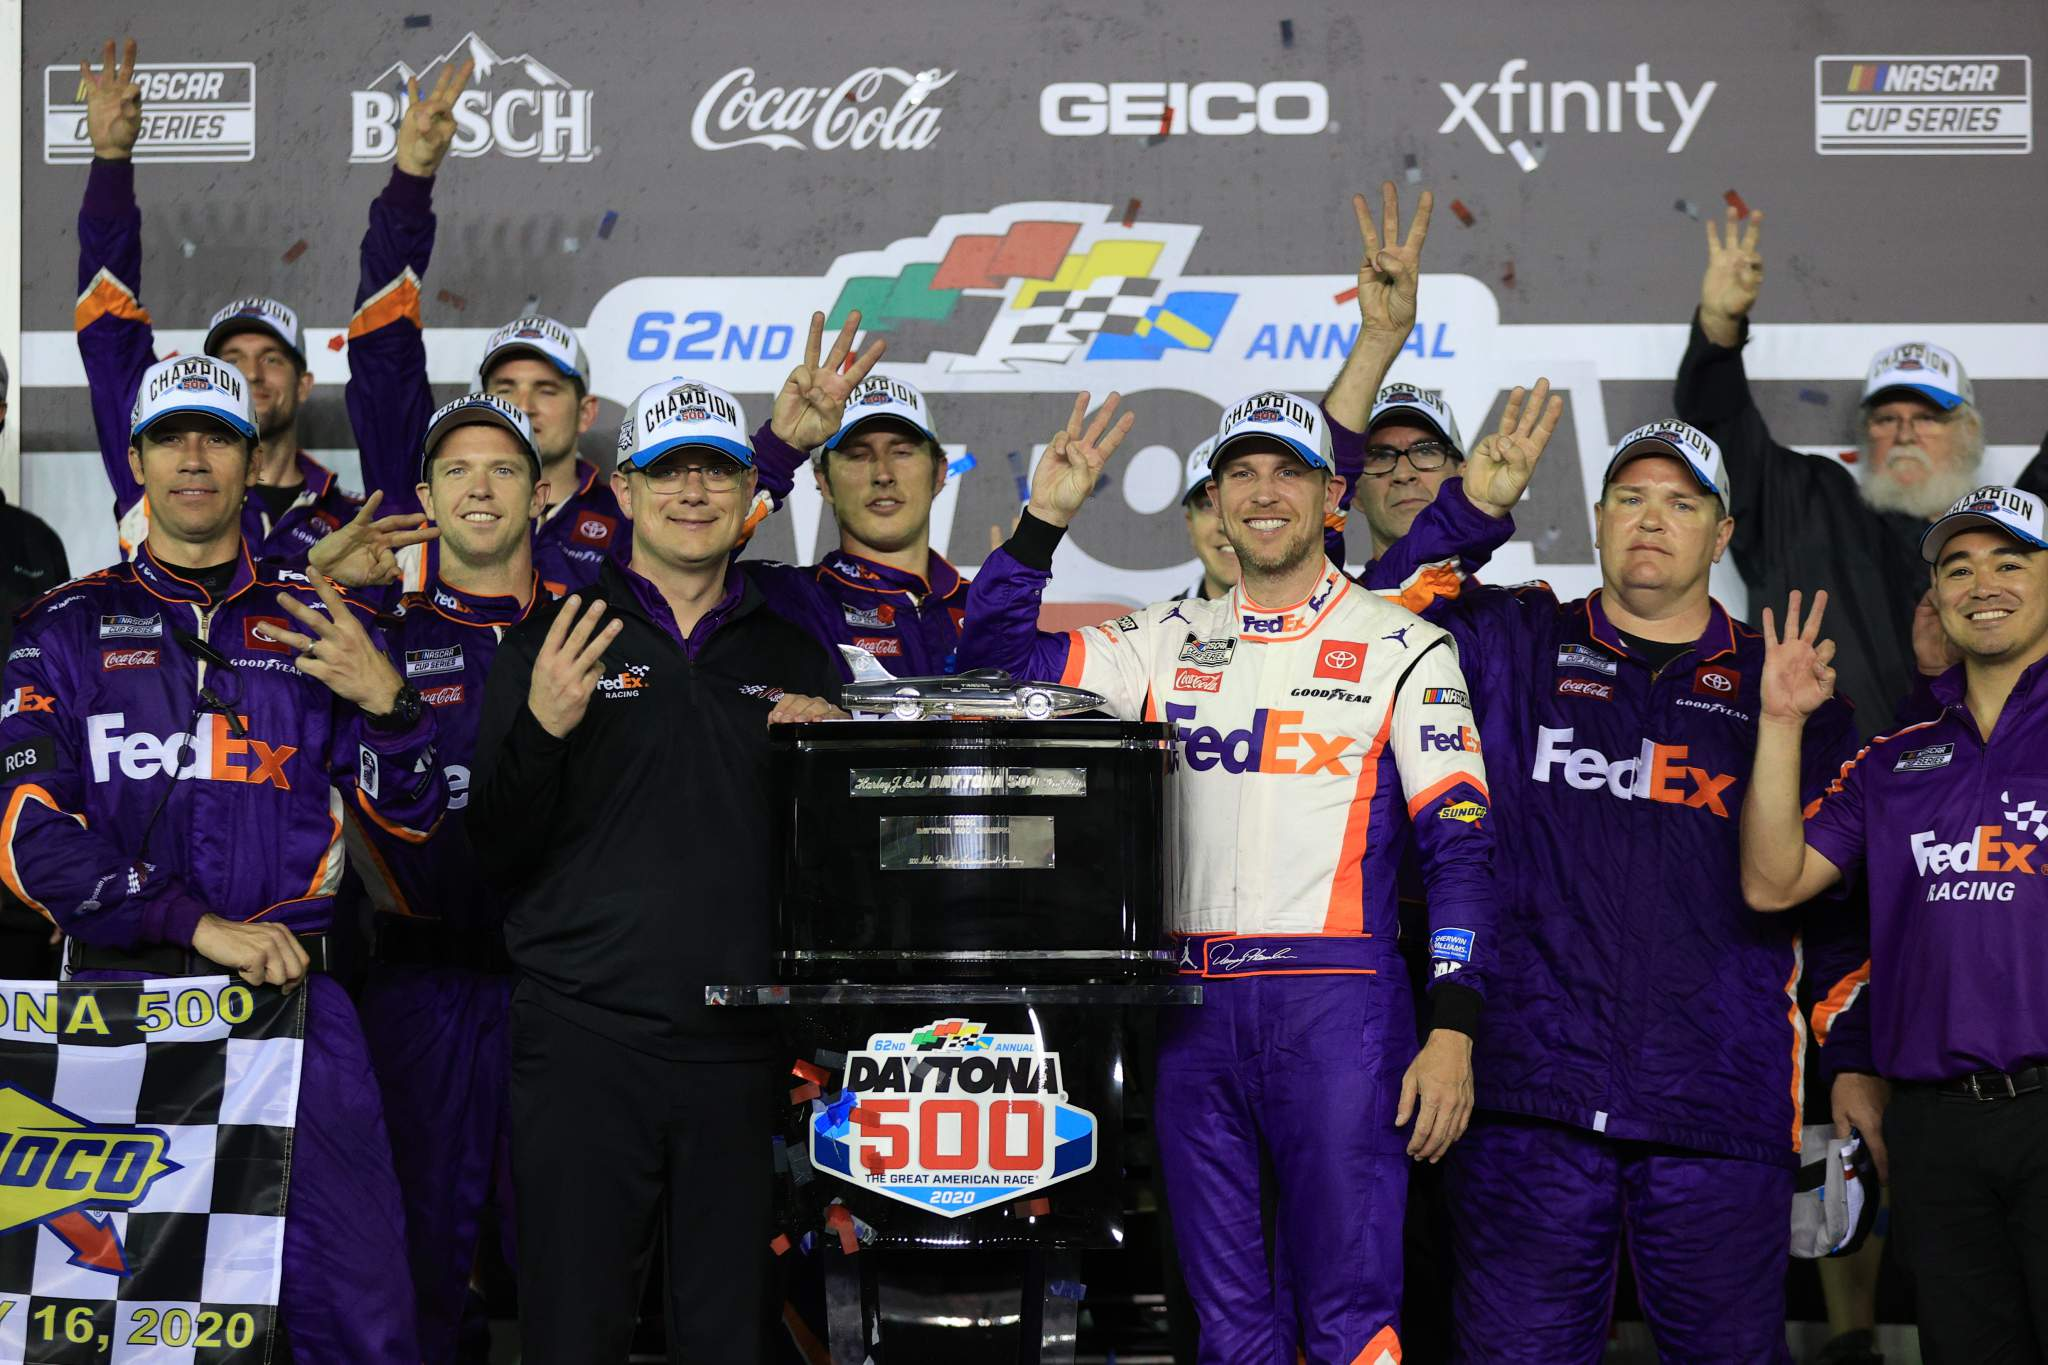 Nascar Cup Series 62nd Annual Daytona 500